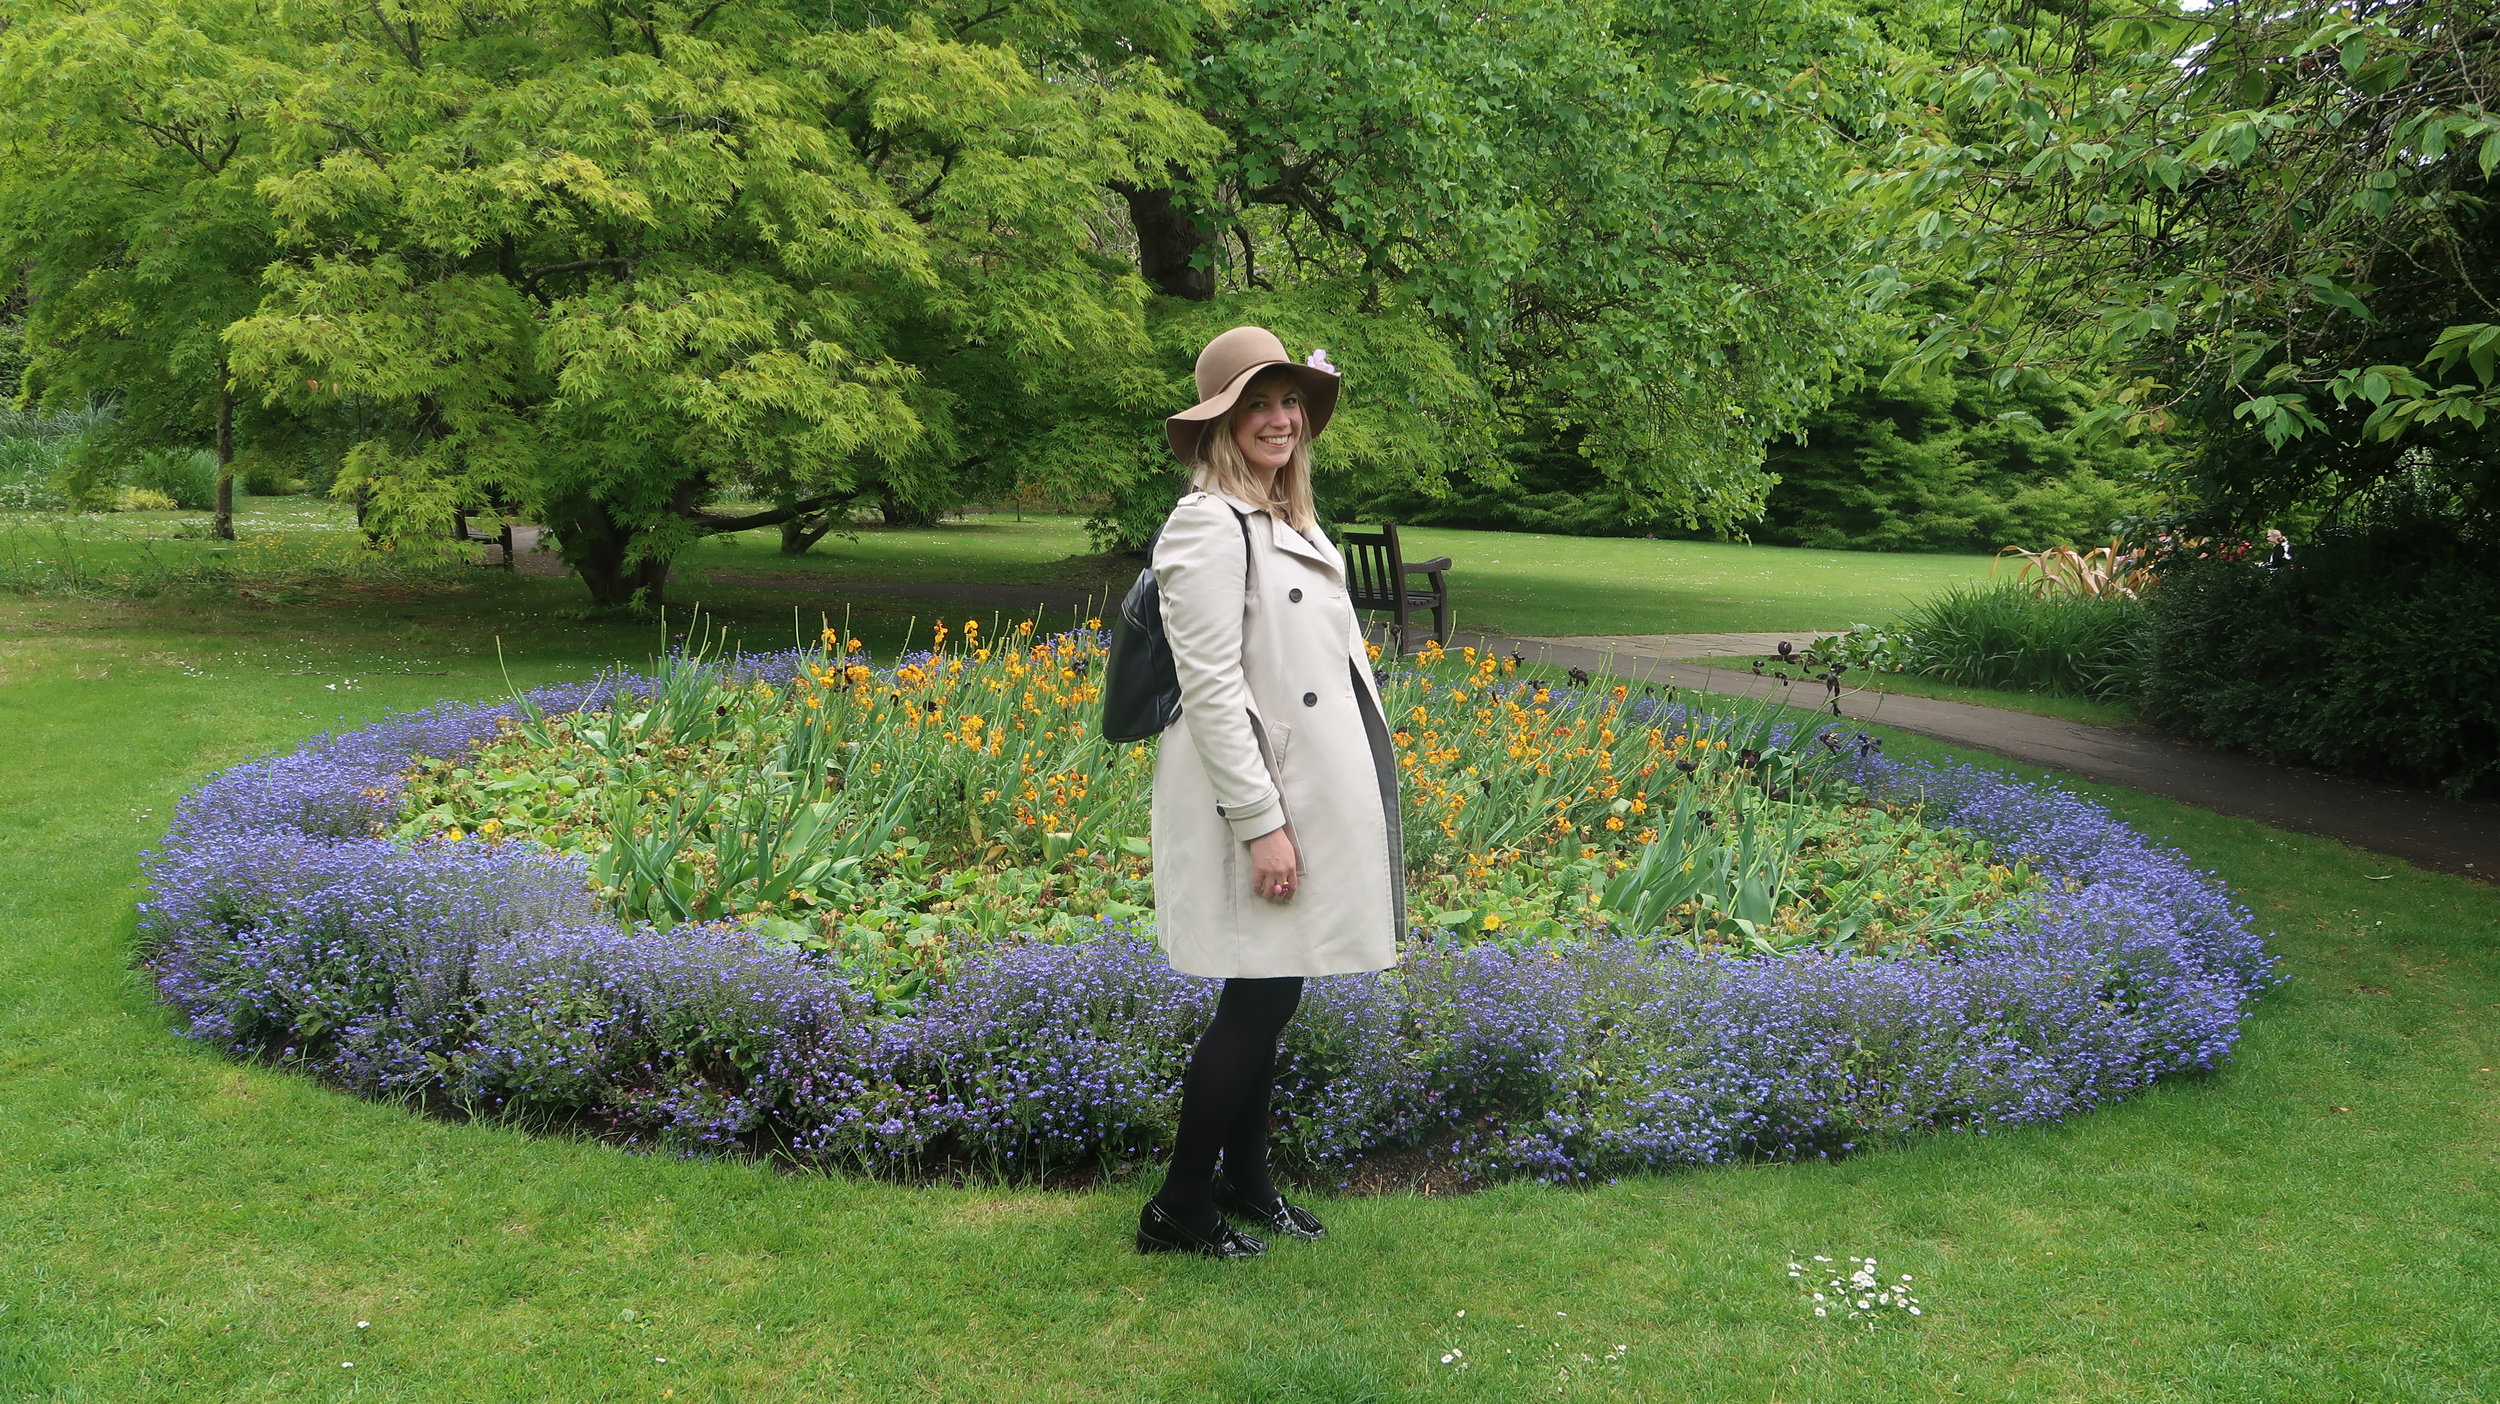 Presence involves fully experiencing the moment. Being around nature always brings me back into the moment. This photo was taken in the Royal Victoria Park in Bath, England.